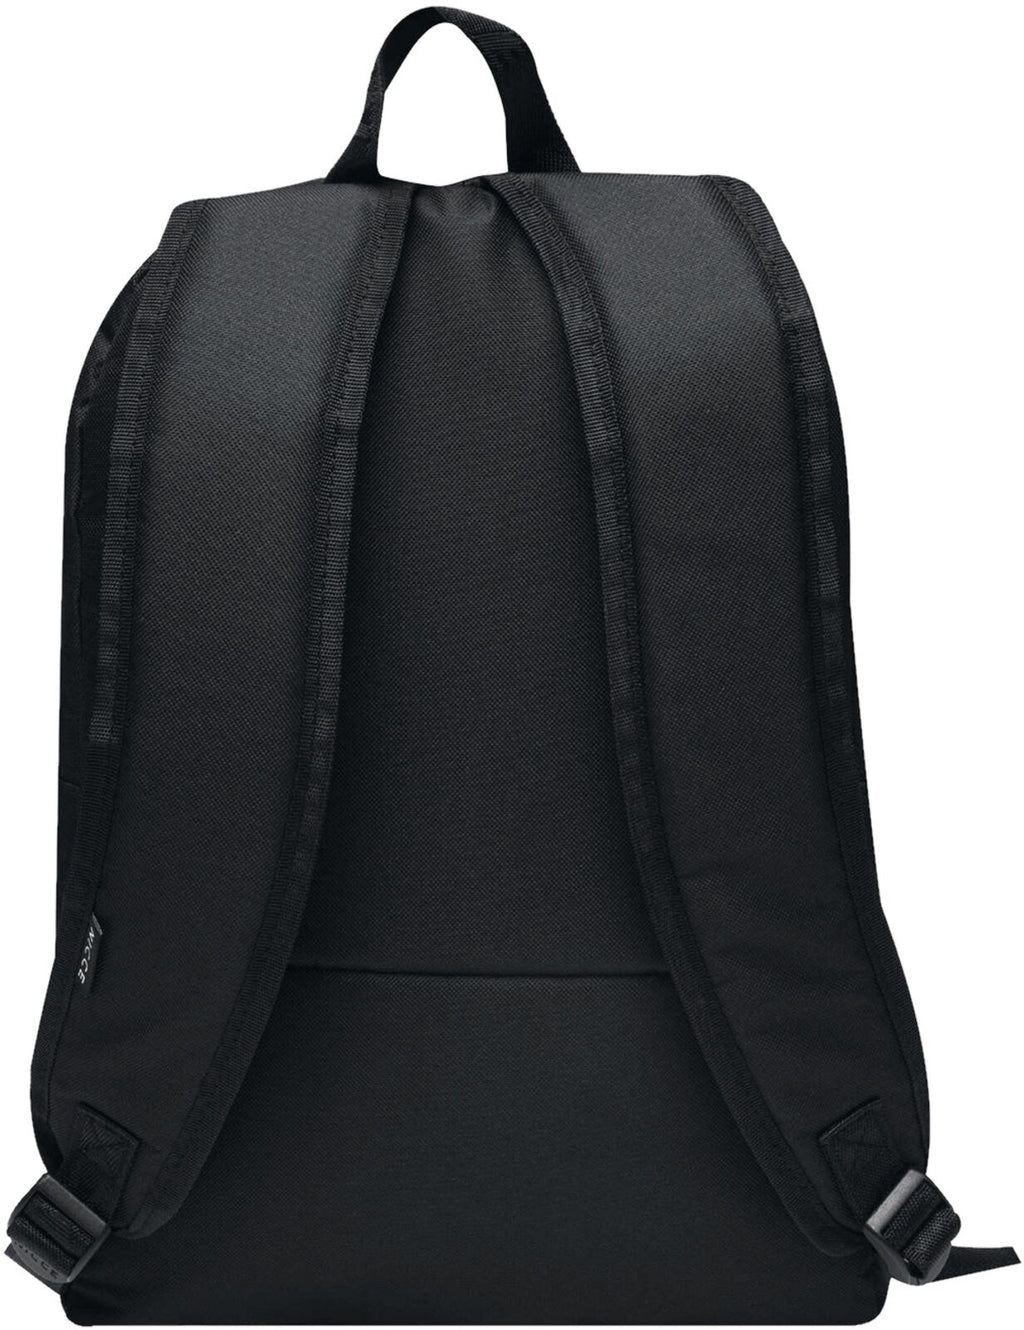 NICCE Origin Backpack Bag Black